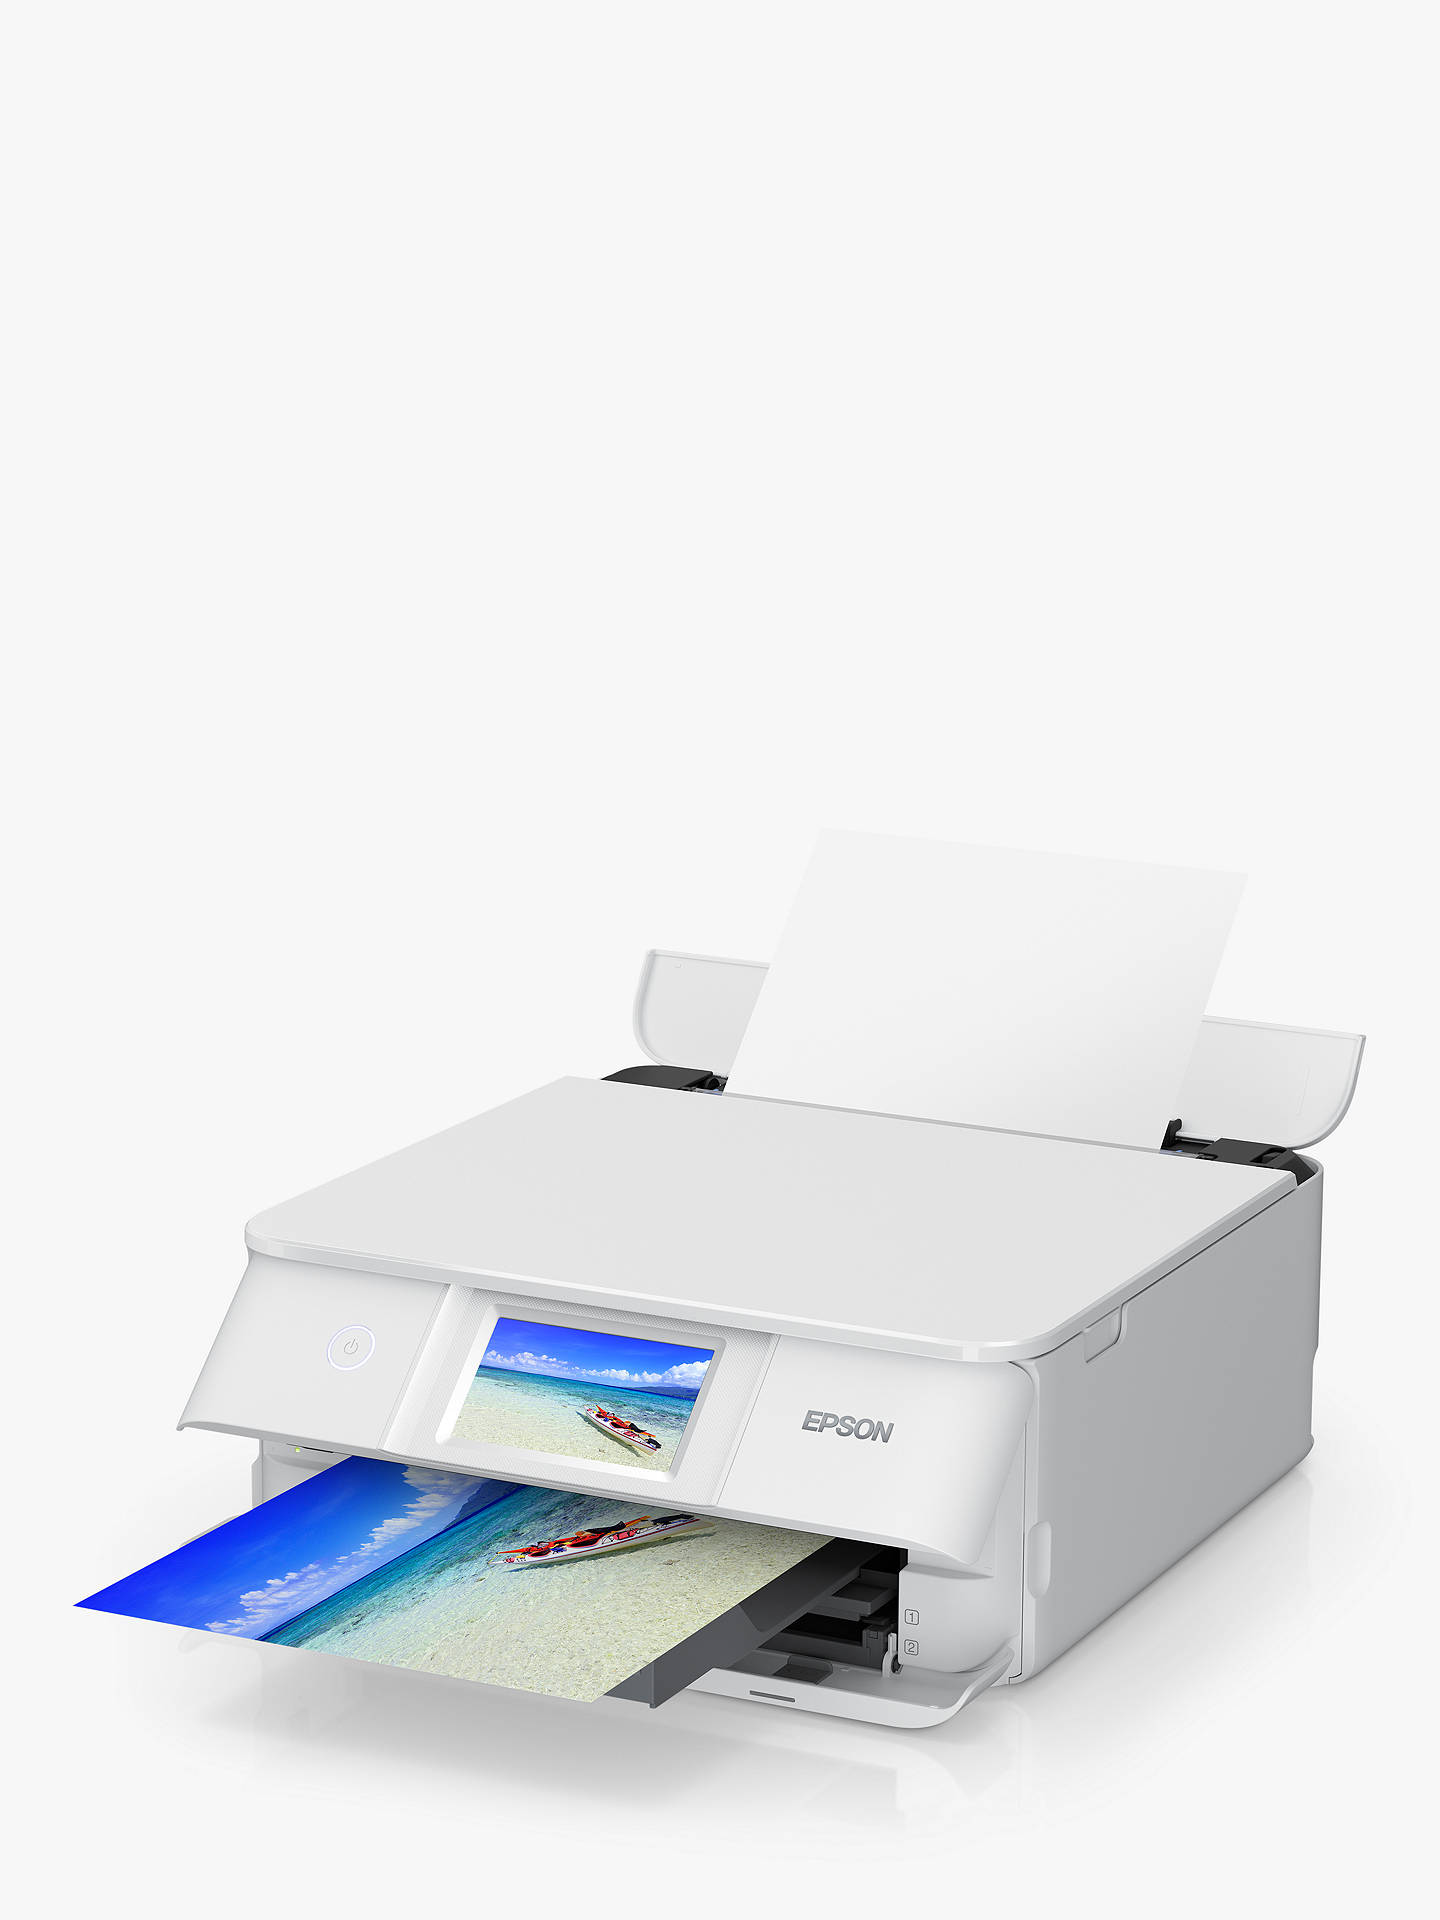 Buy Epson Expression Photo XP-8605 Three-in-One Wireless Printer, White Online at johnlewis.com